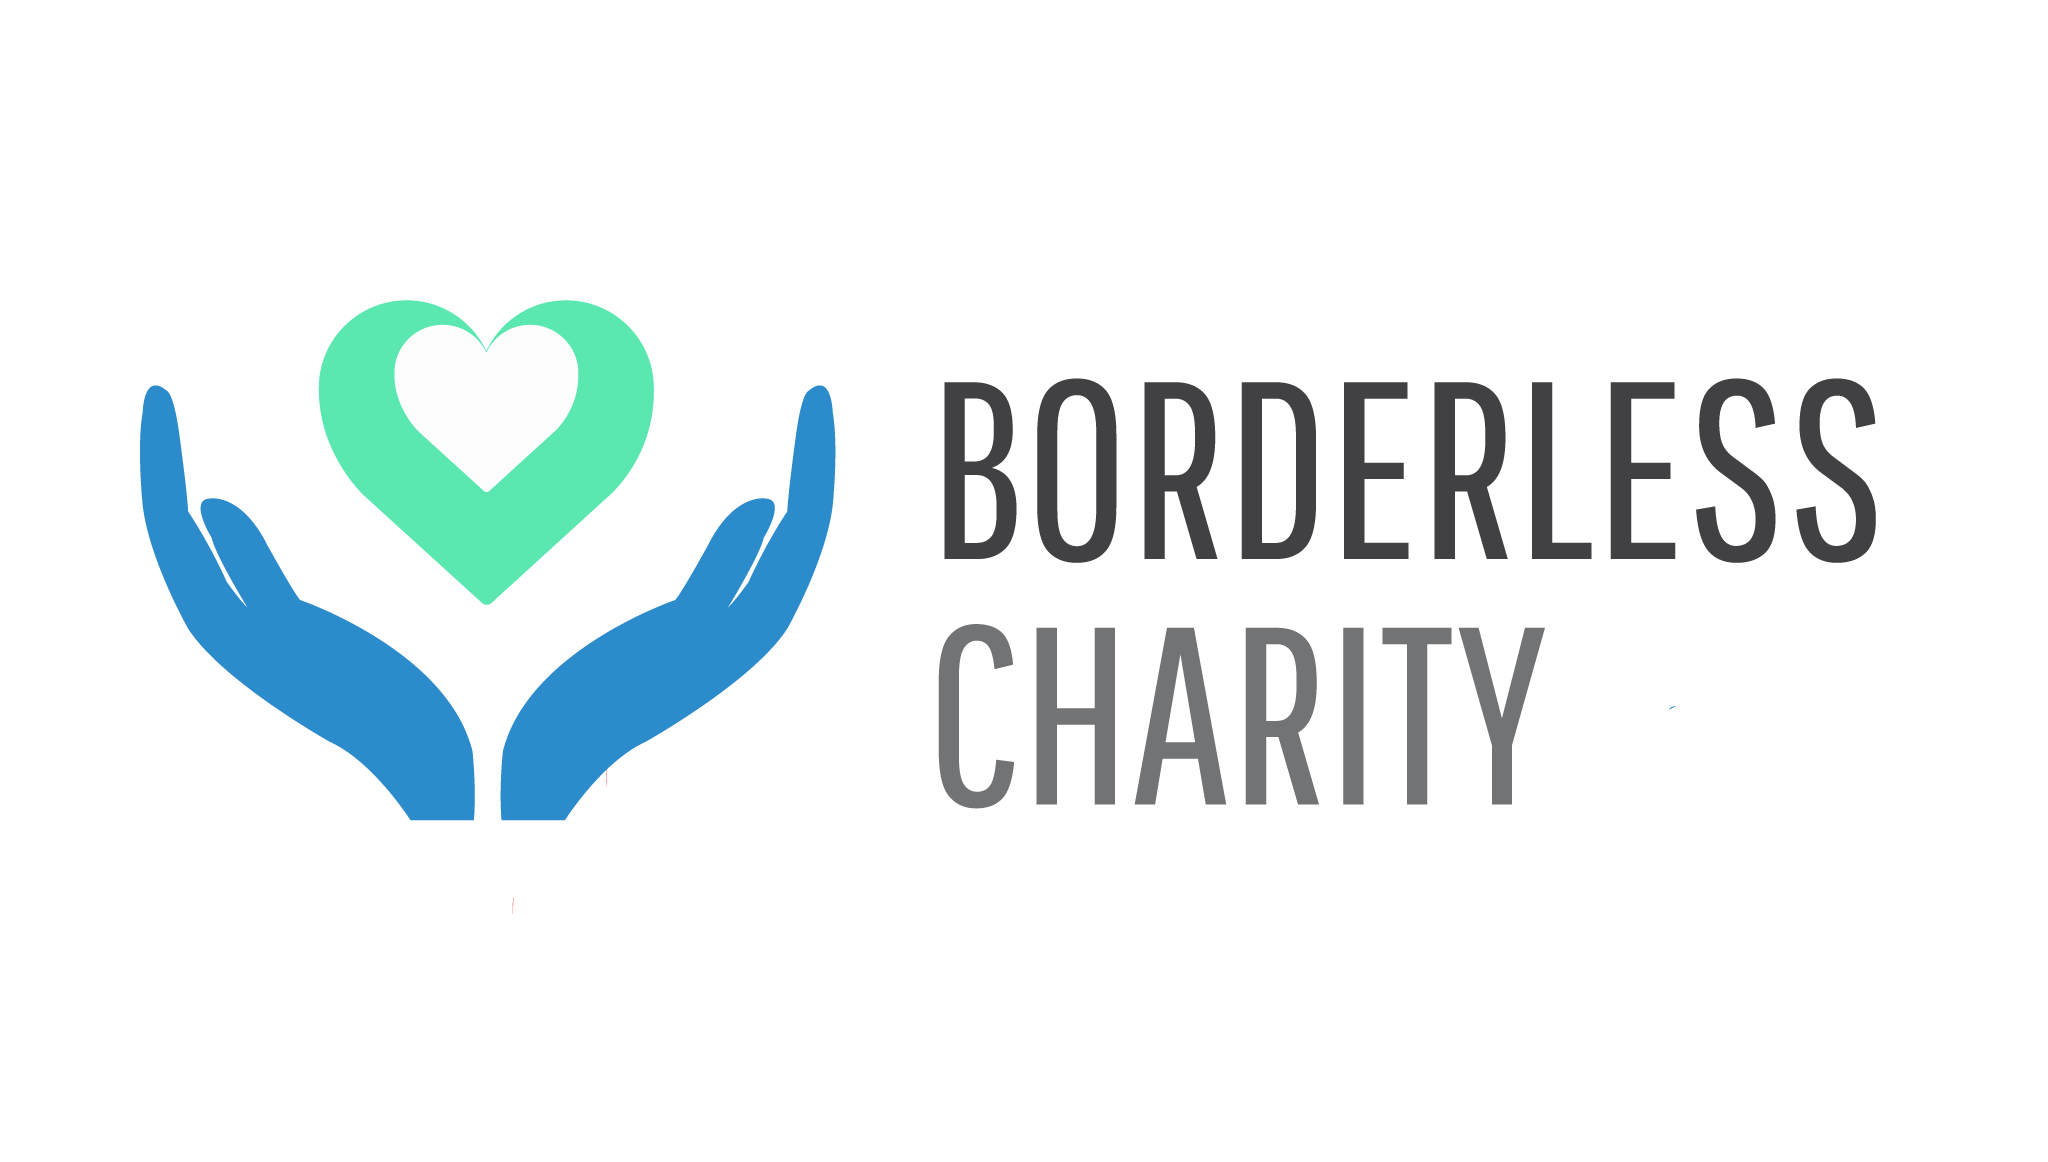 Borderless Charity